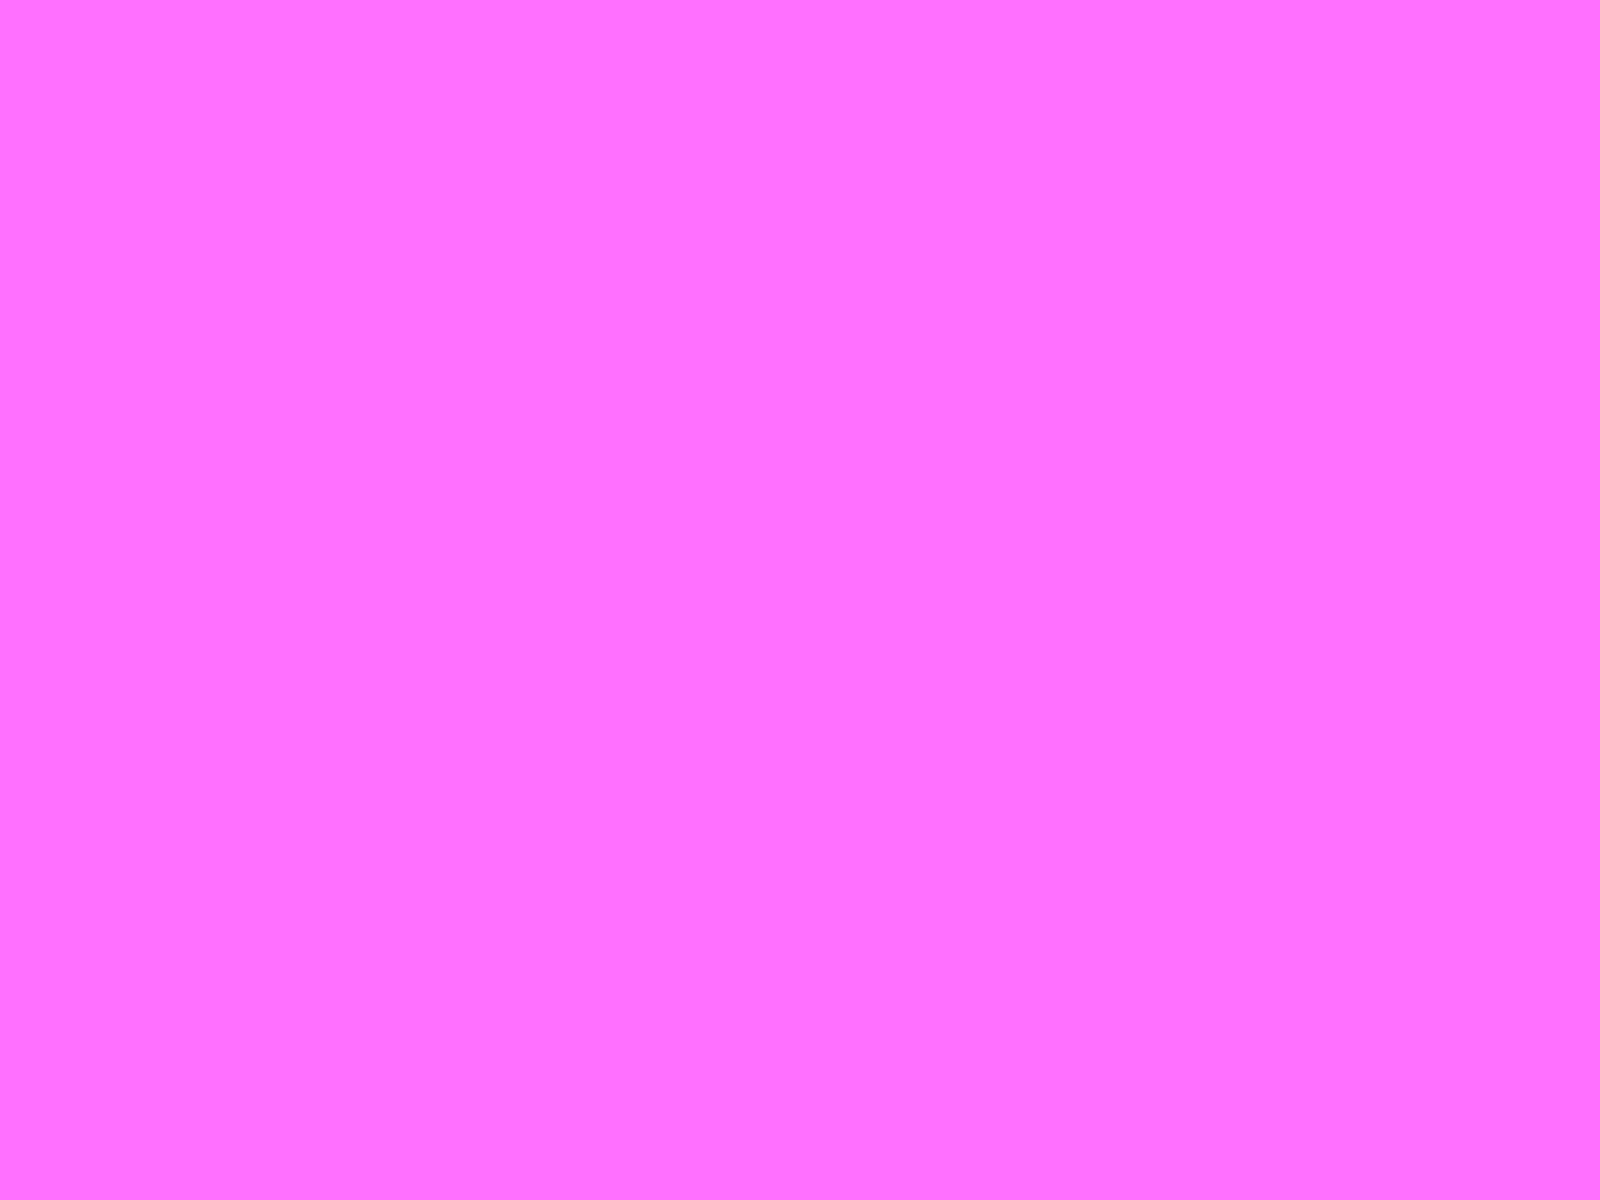 1600x1200 Ultra Pink Solid Color Background